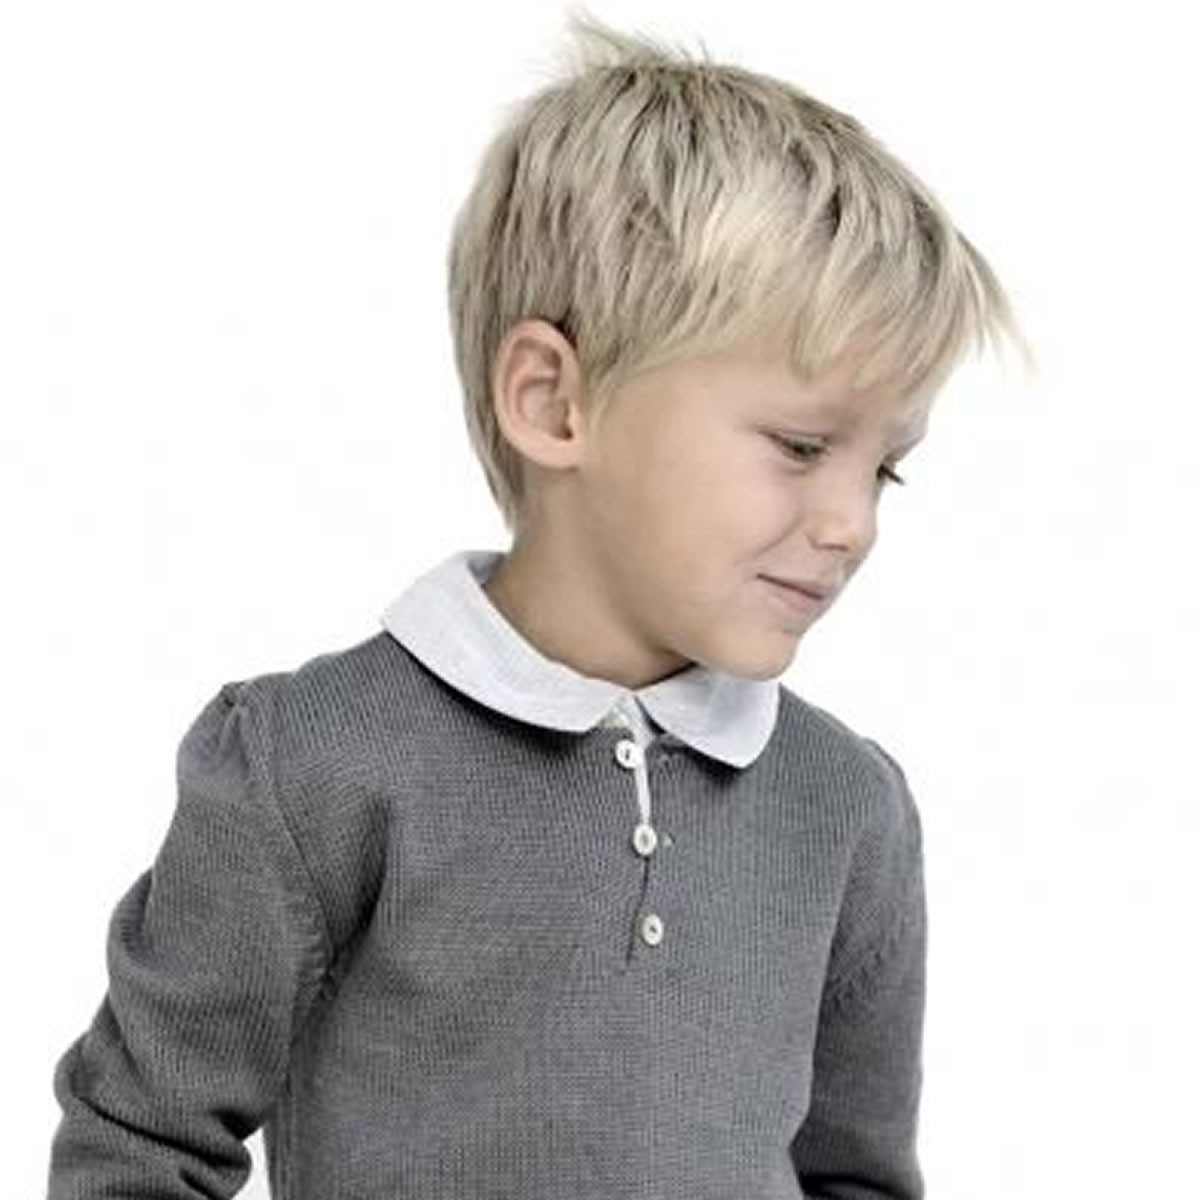 Best ideas about Little Boys Hairstyles . Save or Pin Great Hairstyles and Haircuts ideas for Little Boys 2018 Now.